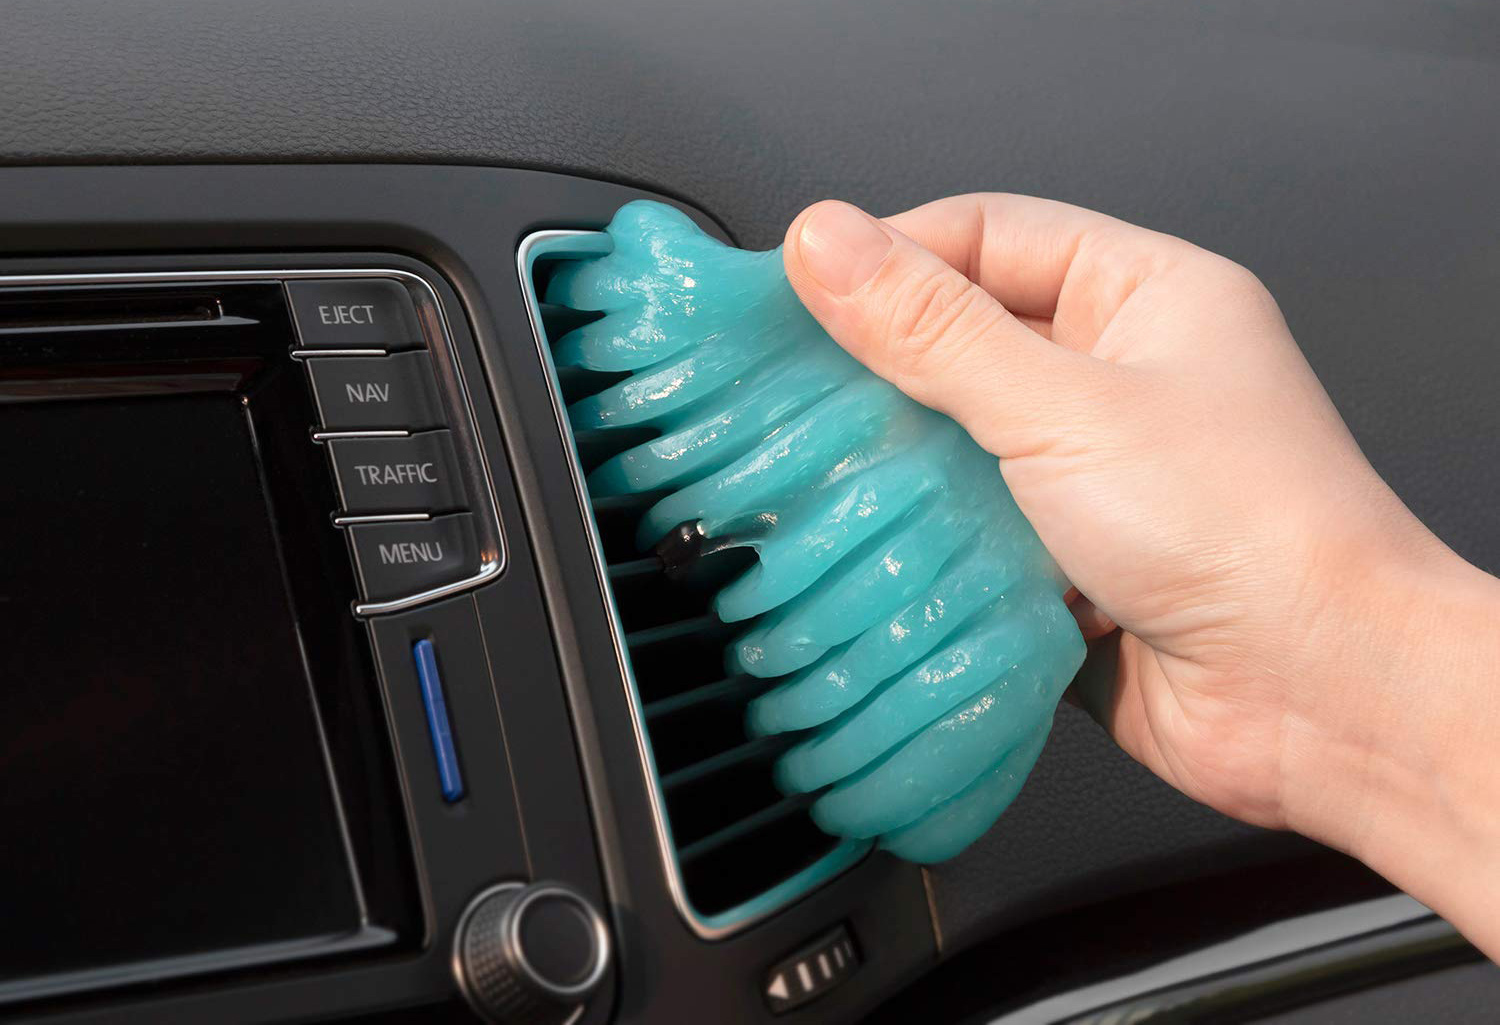 Auto Car Accessories Cleaning Detailing Brushes Keyboard Dust Collect Computer